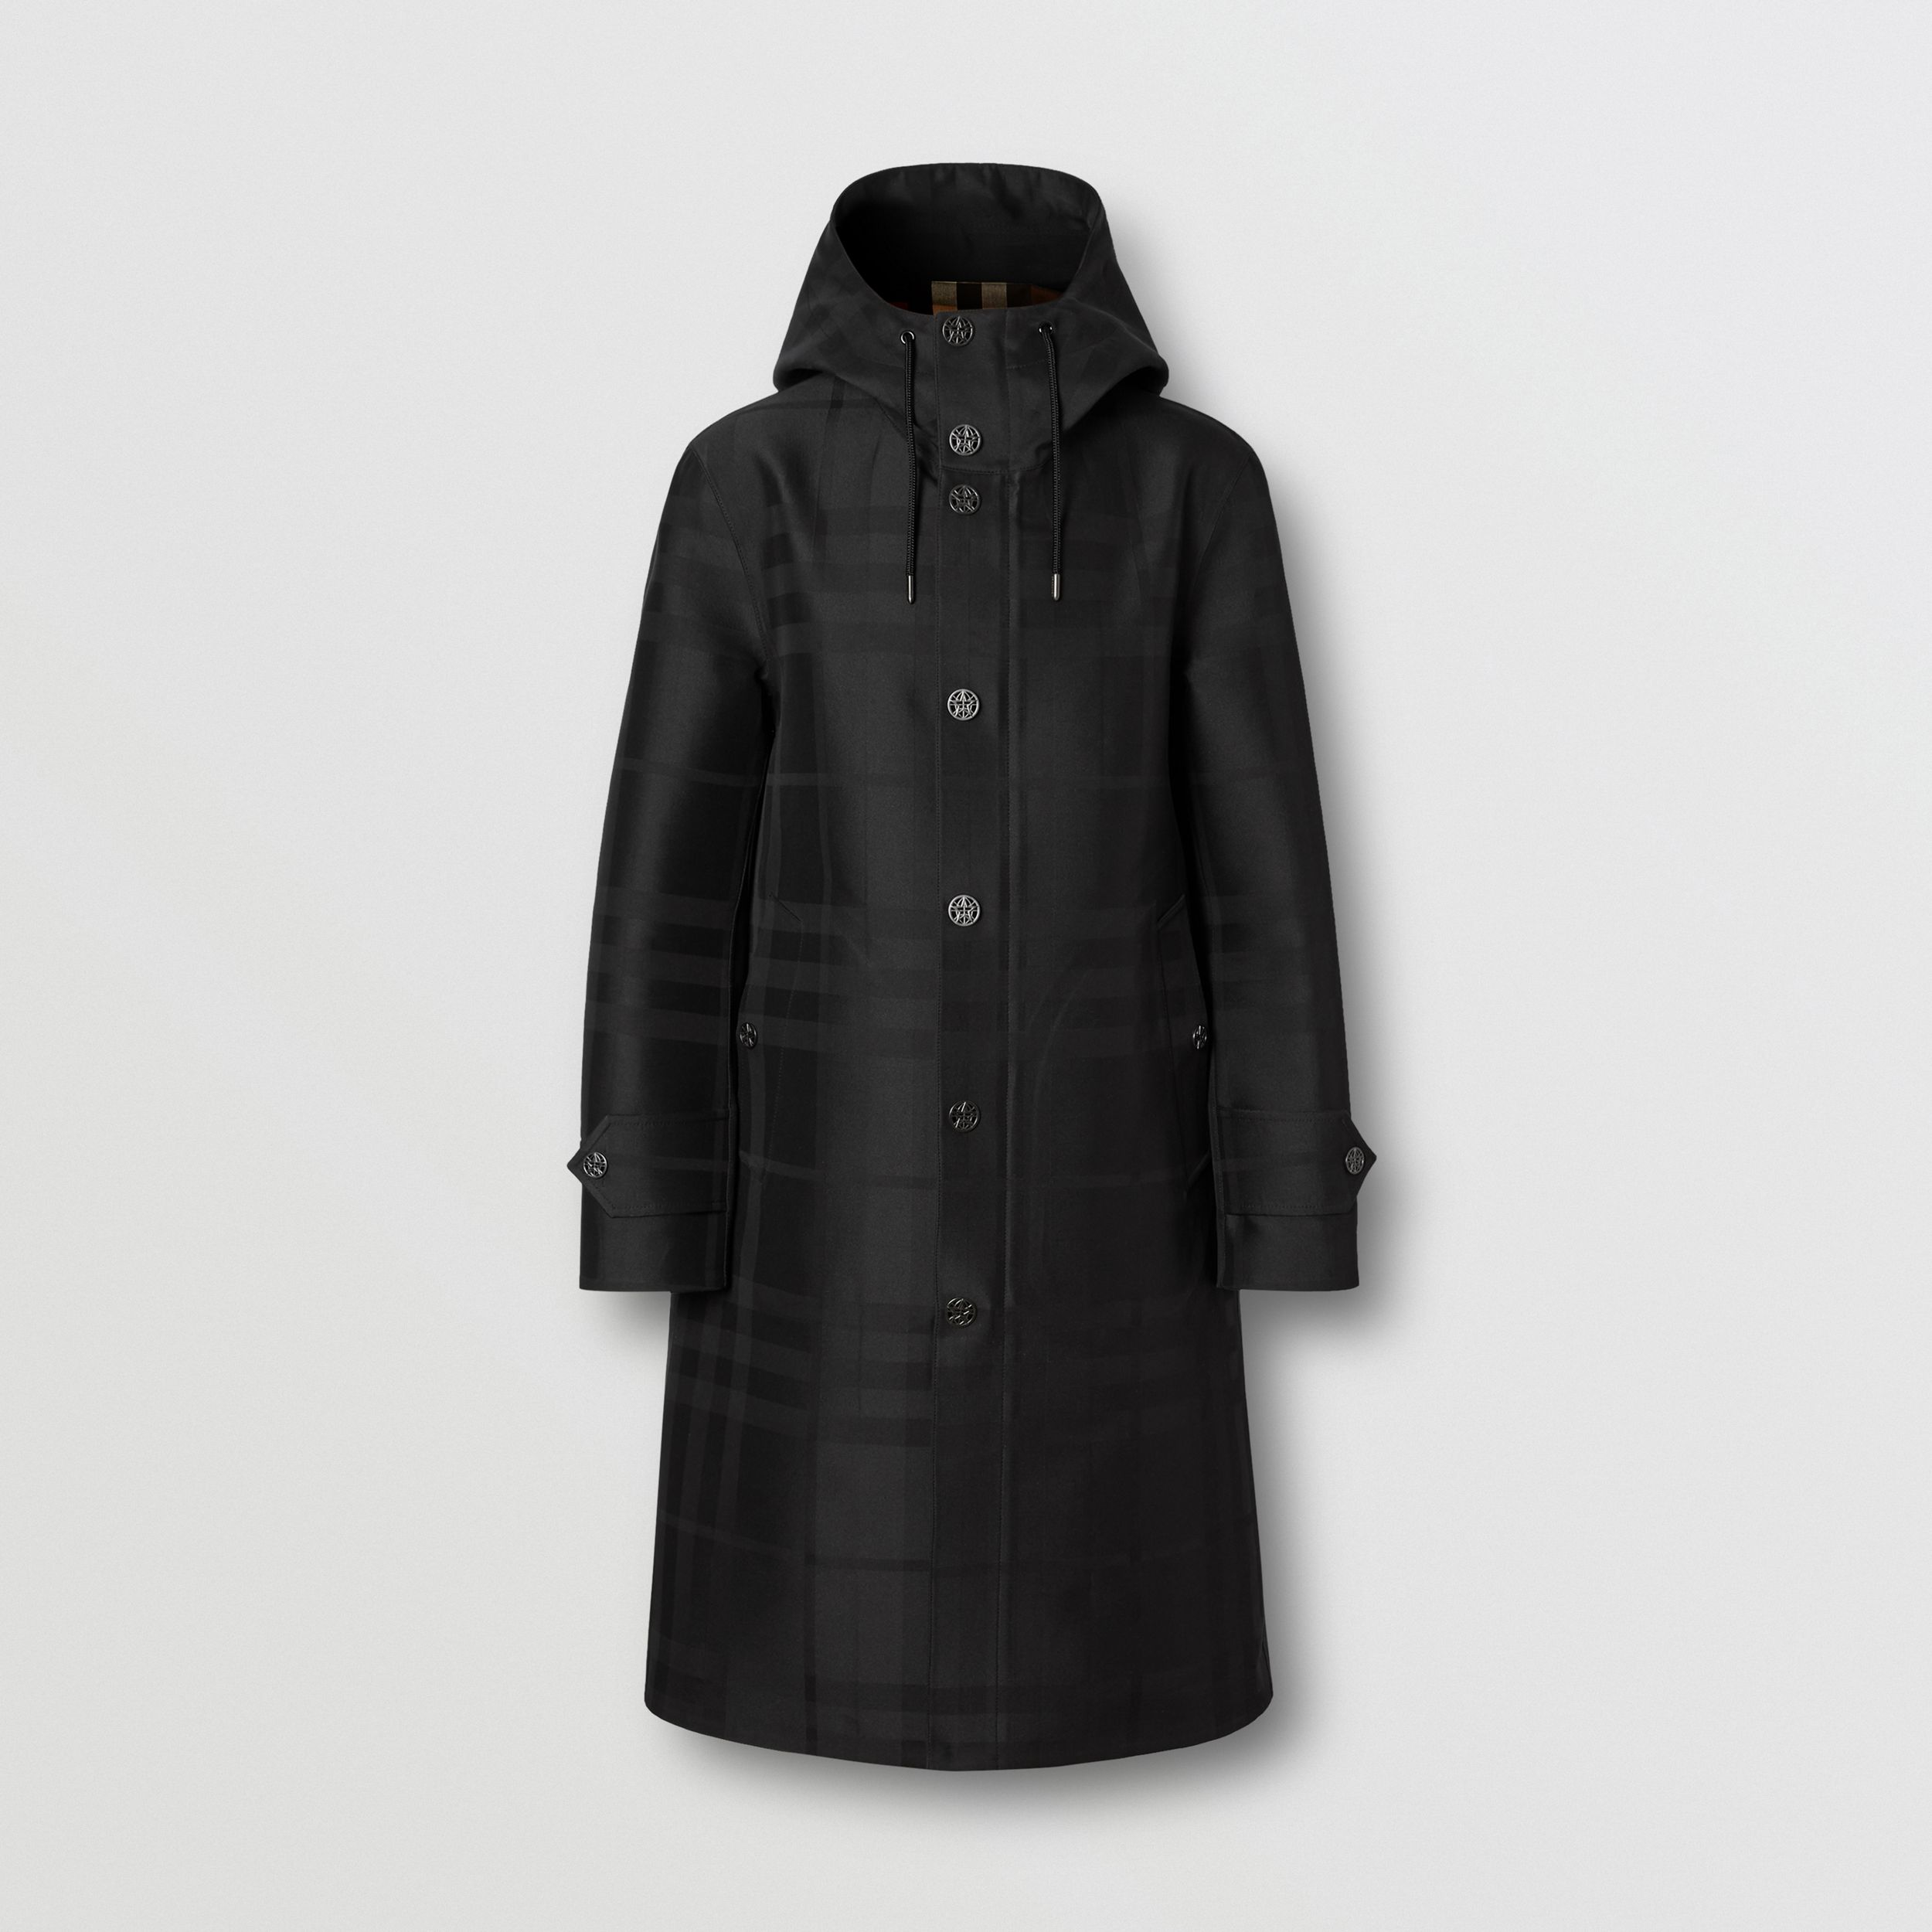 Globe Graphic Detail Check Technical Cotton Coat in Black - Men | Burberry Canada - 4